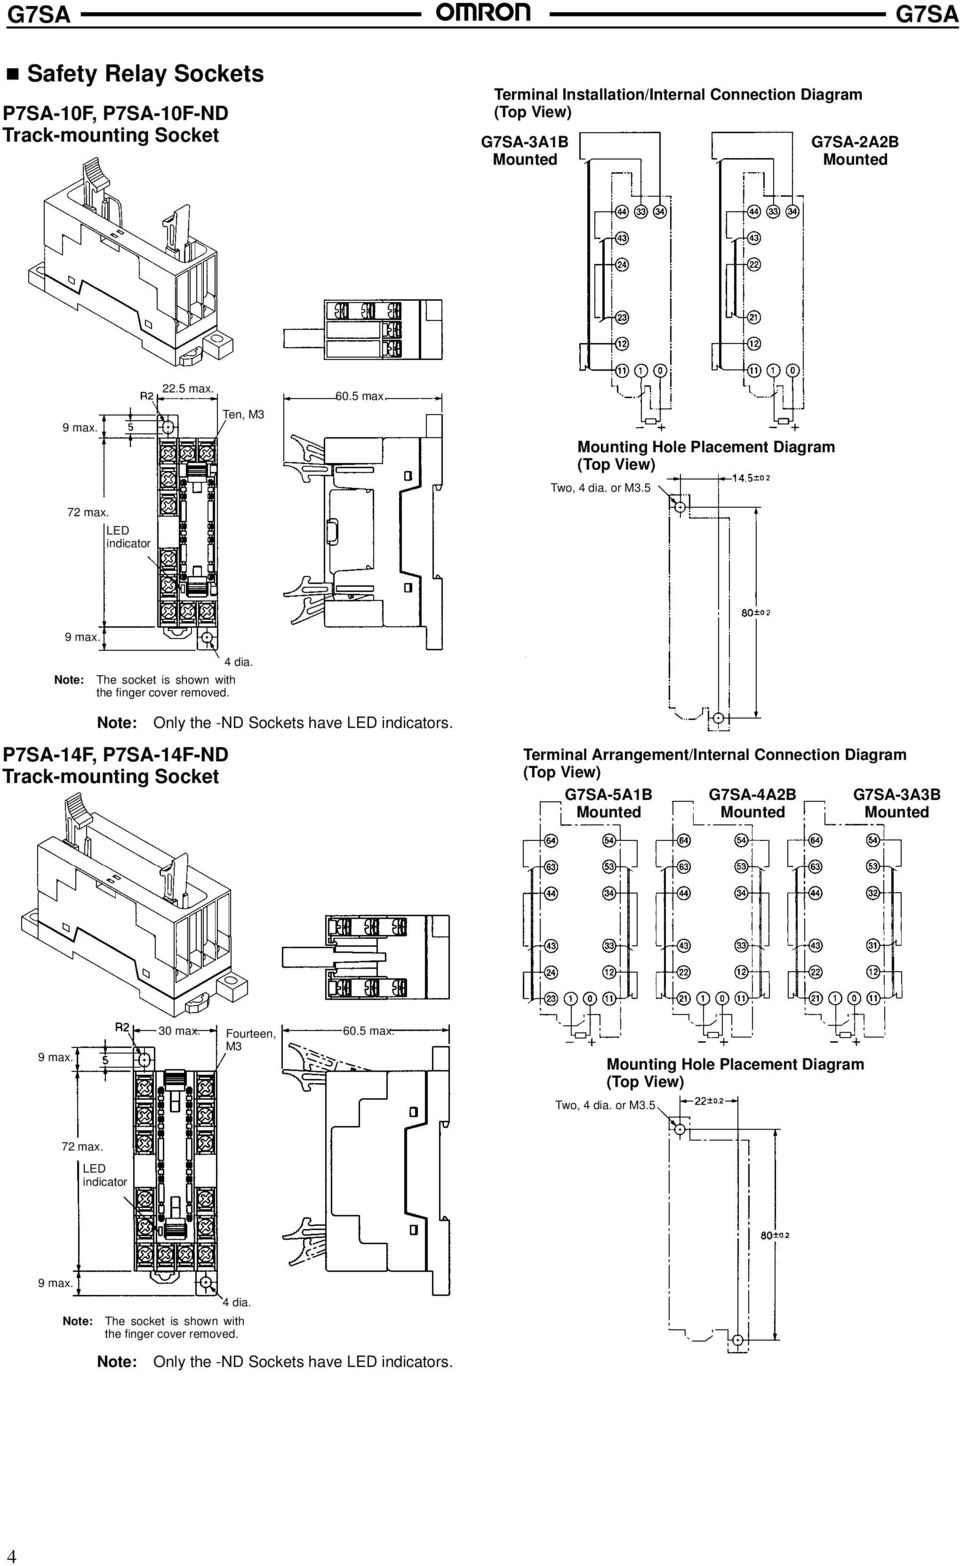 Terminal Arrangement/Internal Connection Diagram (Top View) -5A1B -4A2B -3A3B 9 max. 30 max. Fourteen, 60.5 max. M3 Mounting Hole Placement Diagram (Top View) Two, 4 dia. or M3.5 72 max.